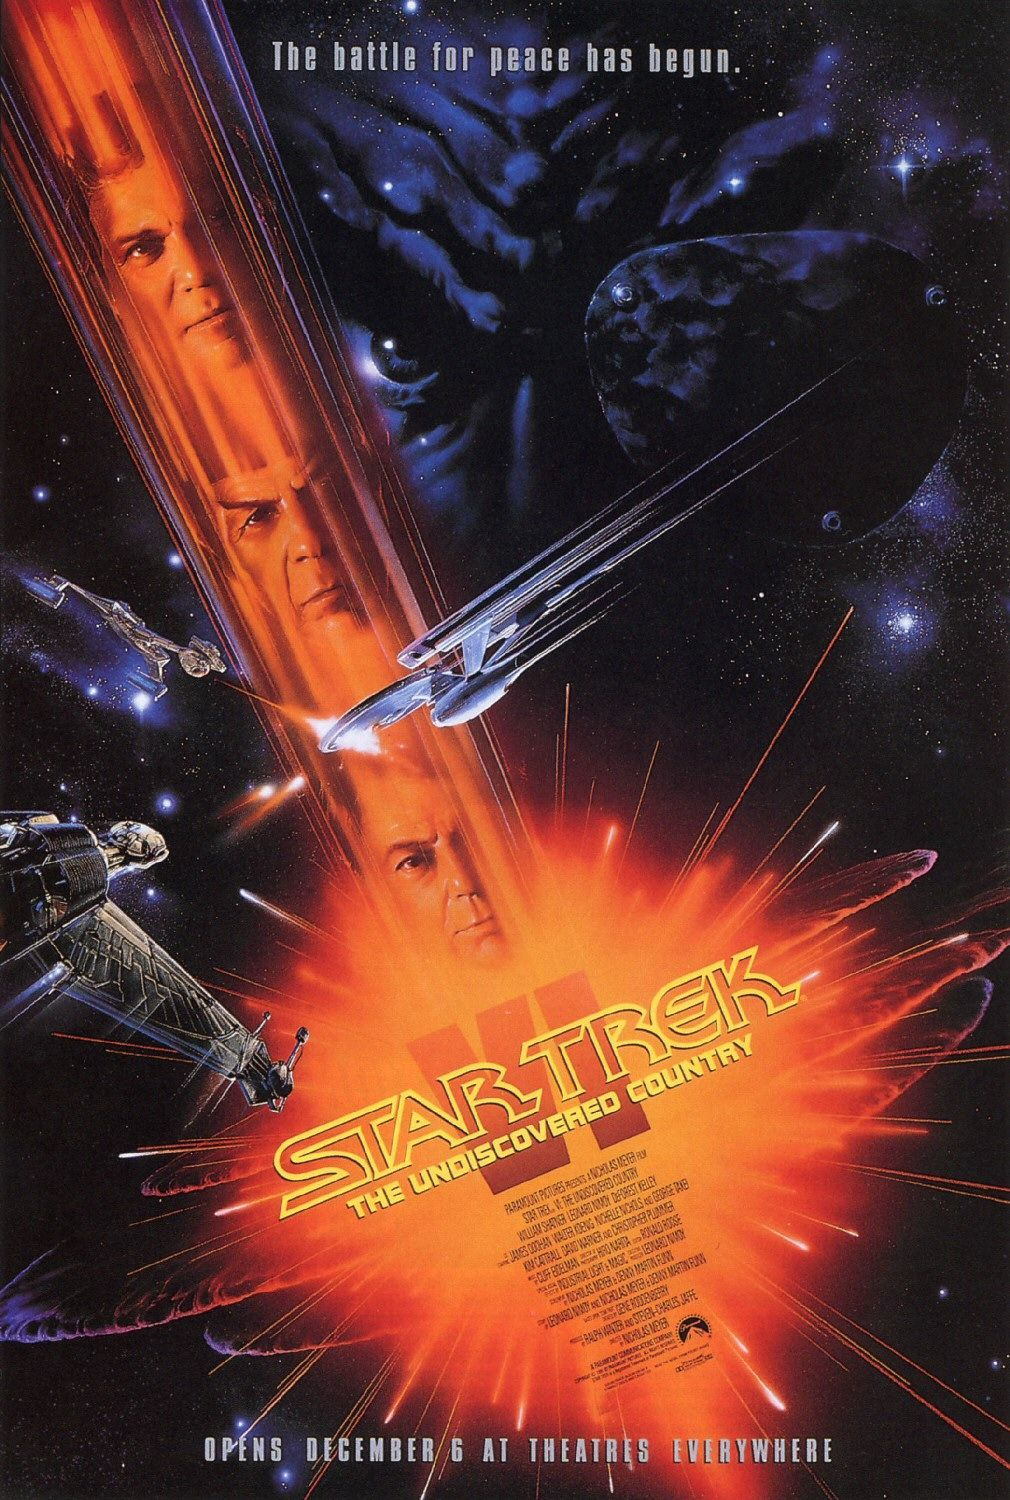 """Star Trek VI The Undiscovered Country"" theatrical poster."